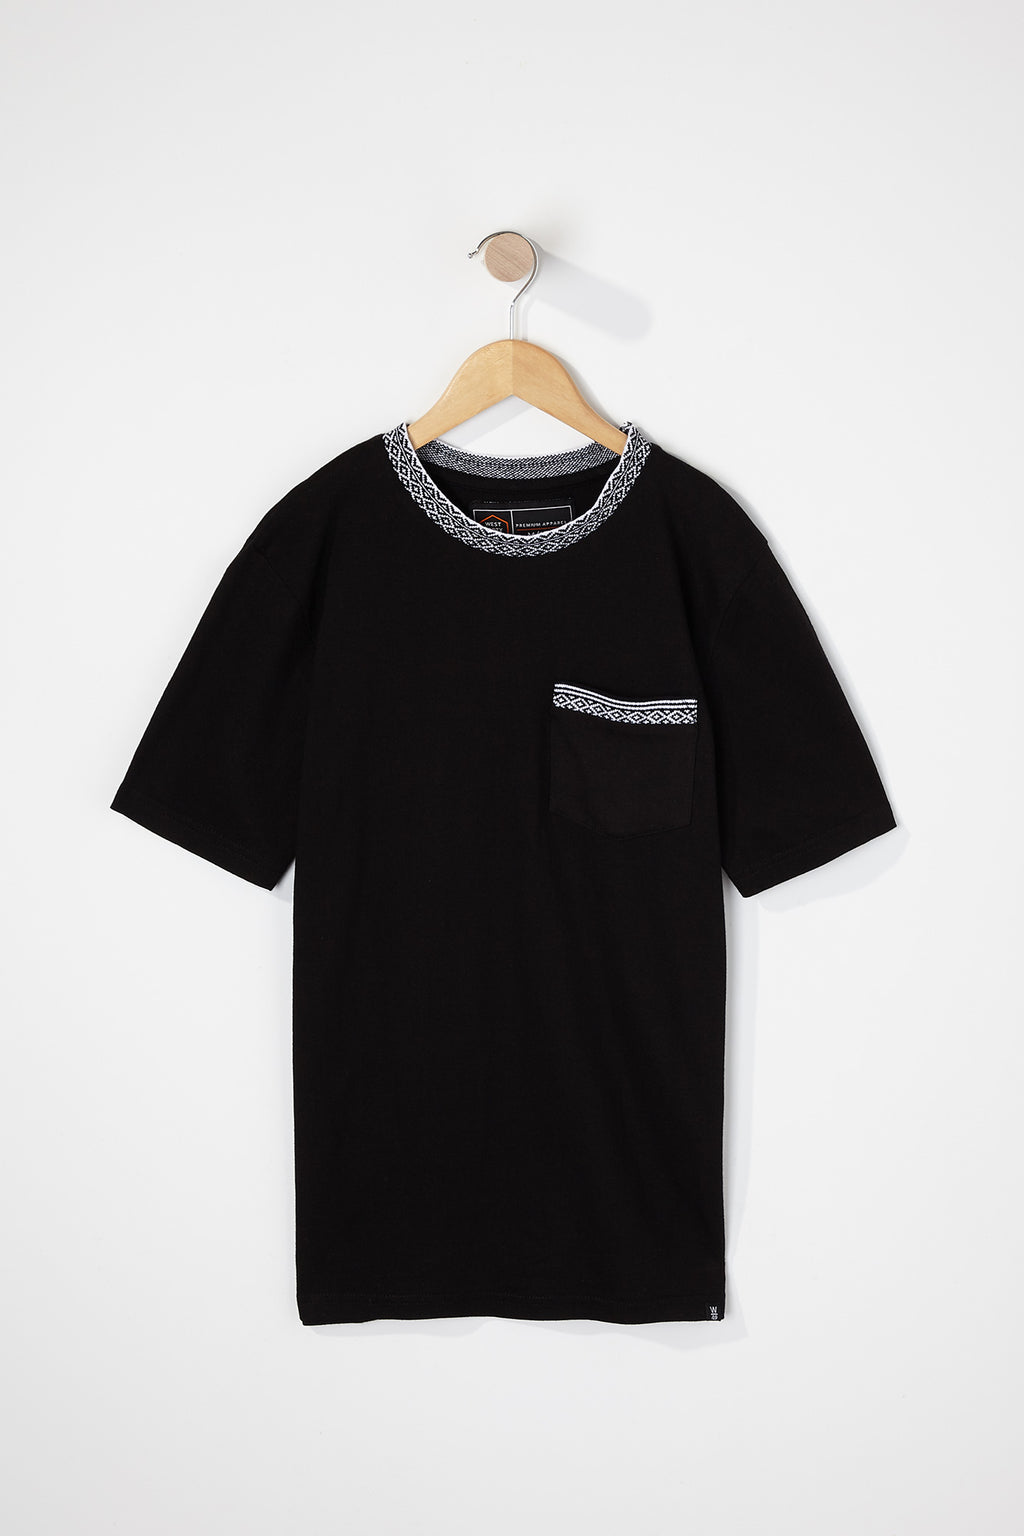 West49 Boys Contrast Pocket And Collar T-Shirt